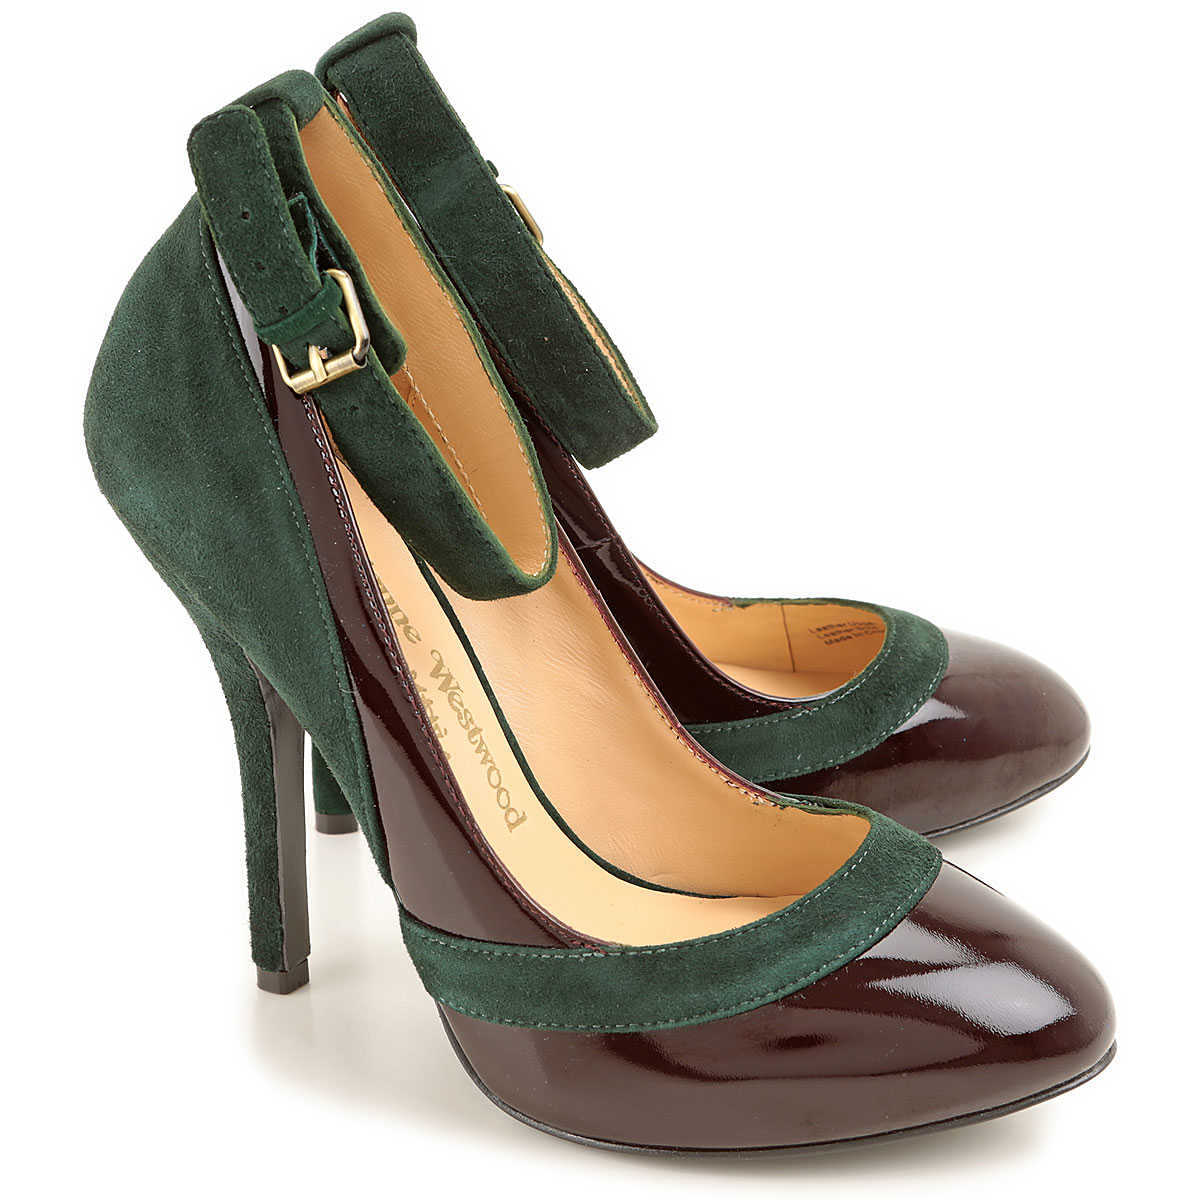 Vivienne Westwood Pumps & High Heels for Women in Outlet Forest Green Canada - GOOFASH - Womens PUMPS